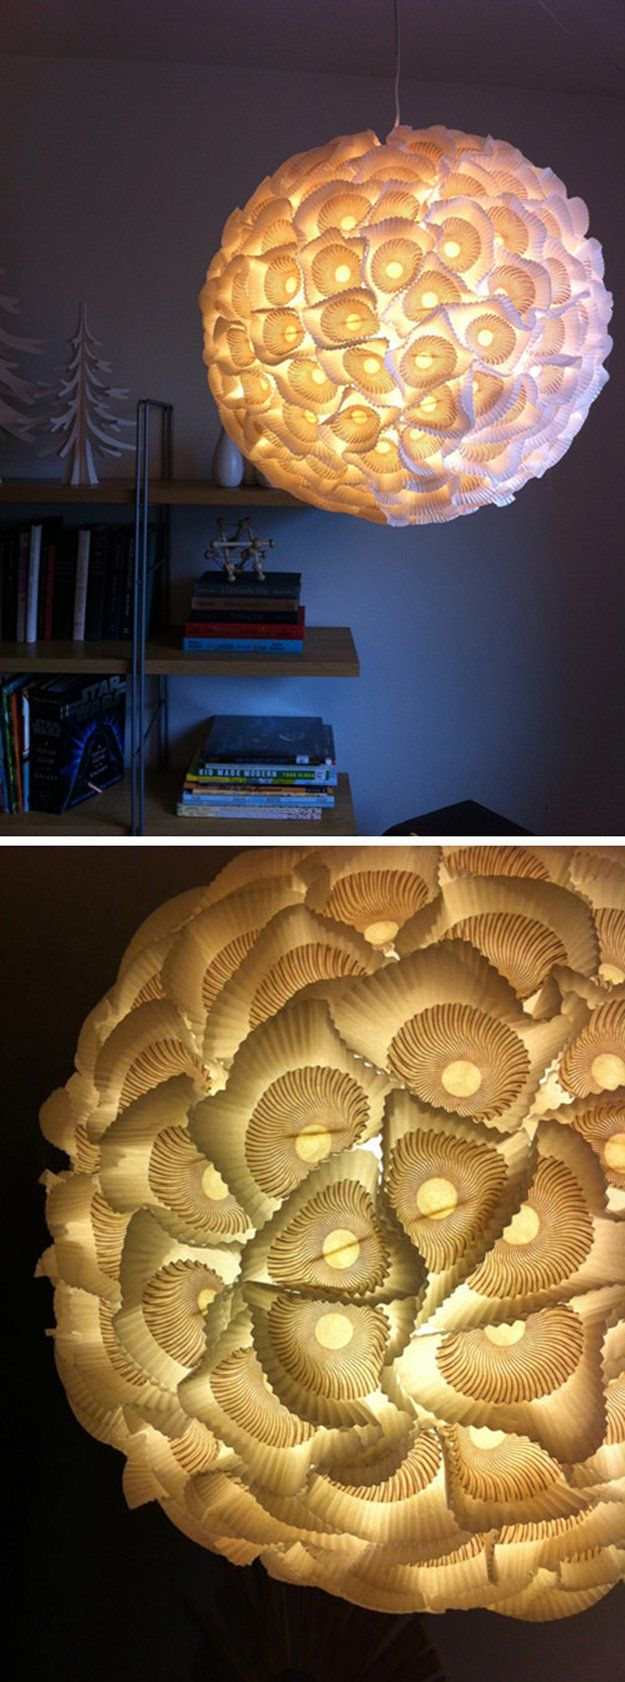 Anthropologie Decoración Hacks | http://artesaniasdebricolaje.ru/diy-decor-anthropologie-hacks/